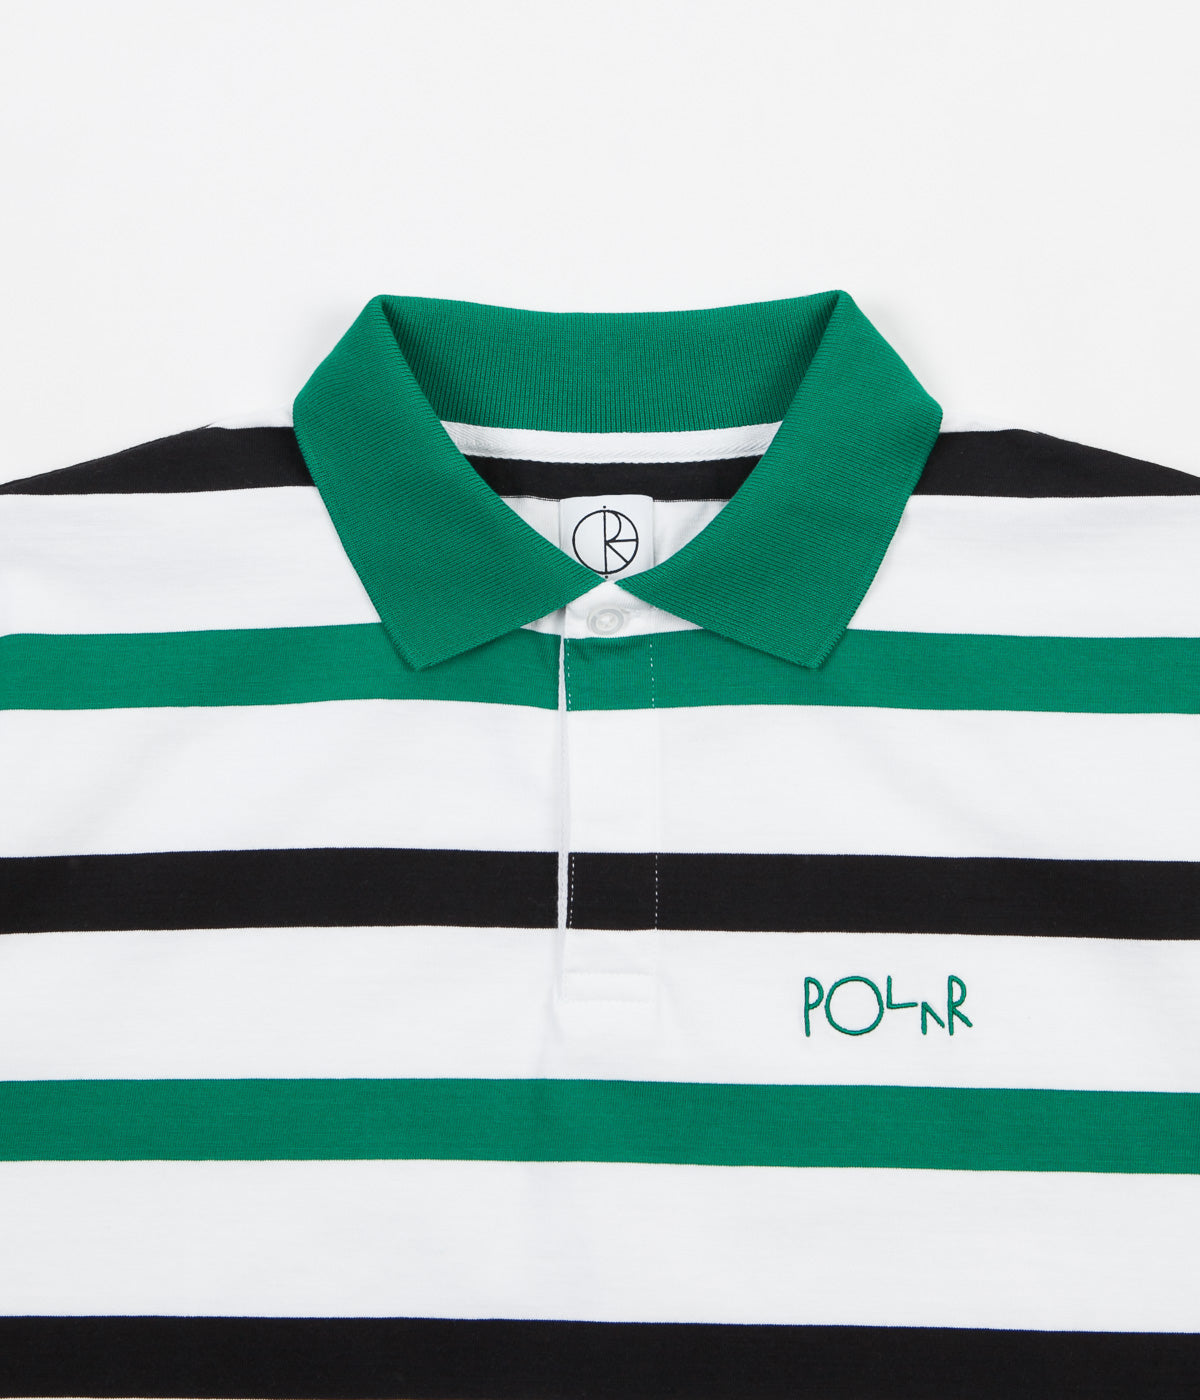 Polar Halls Rugby Shirt - White / Green / Black